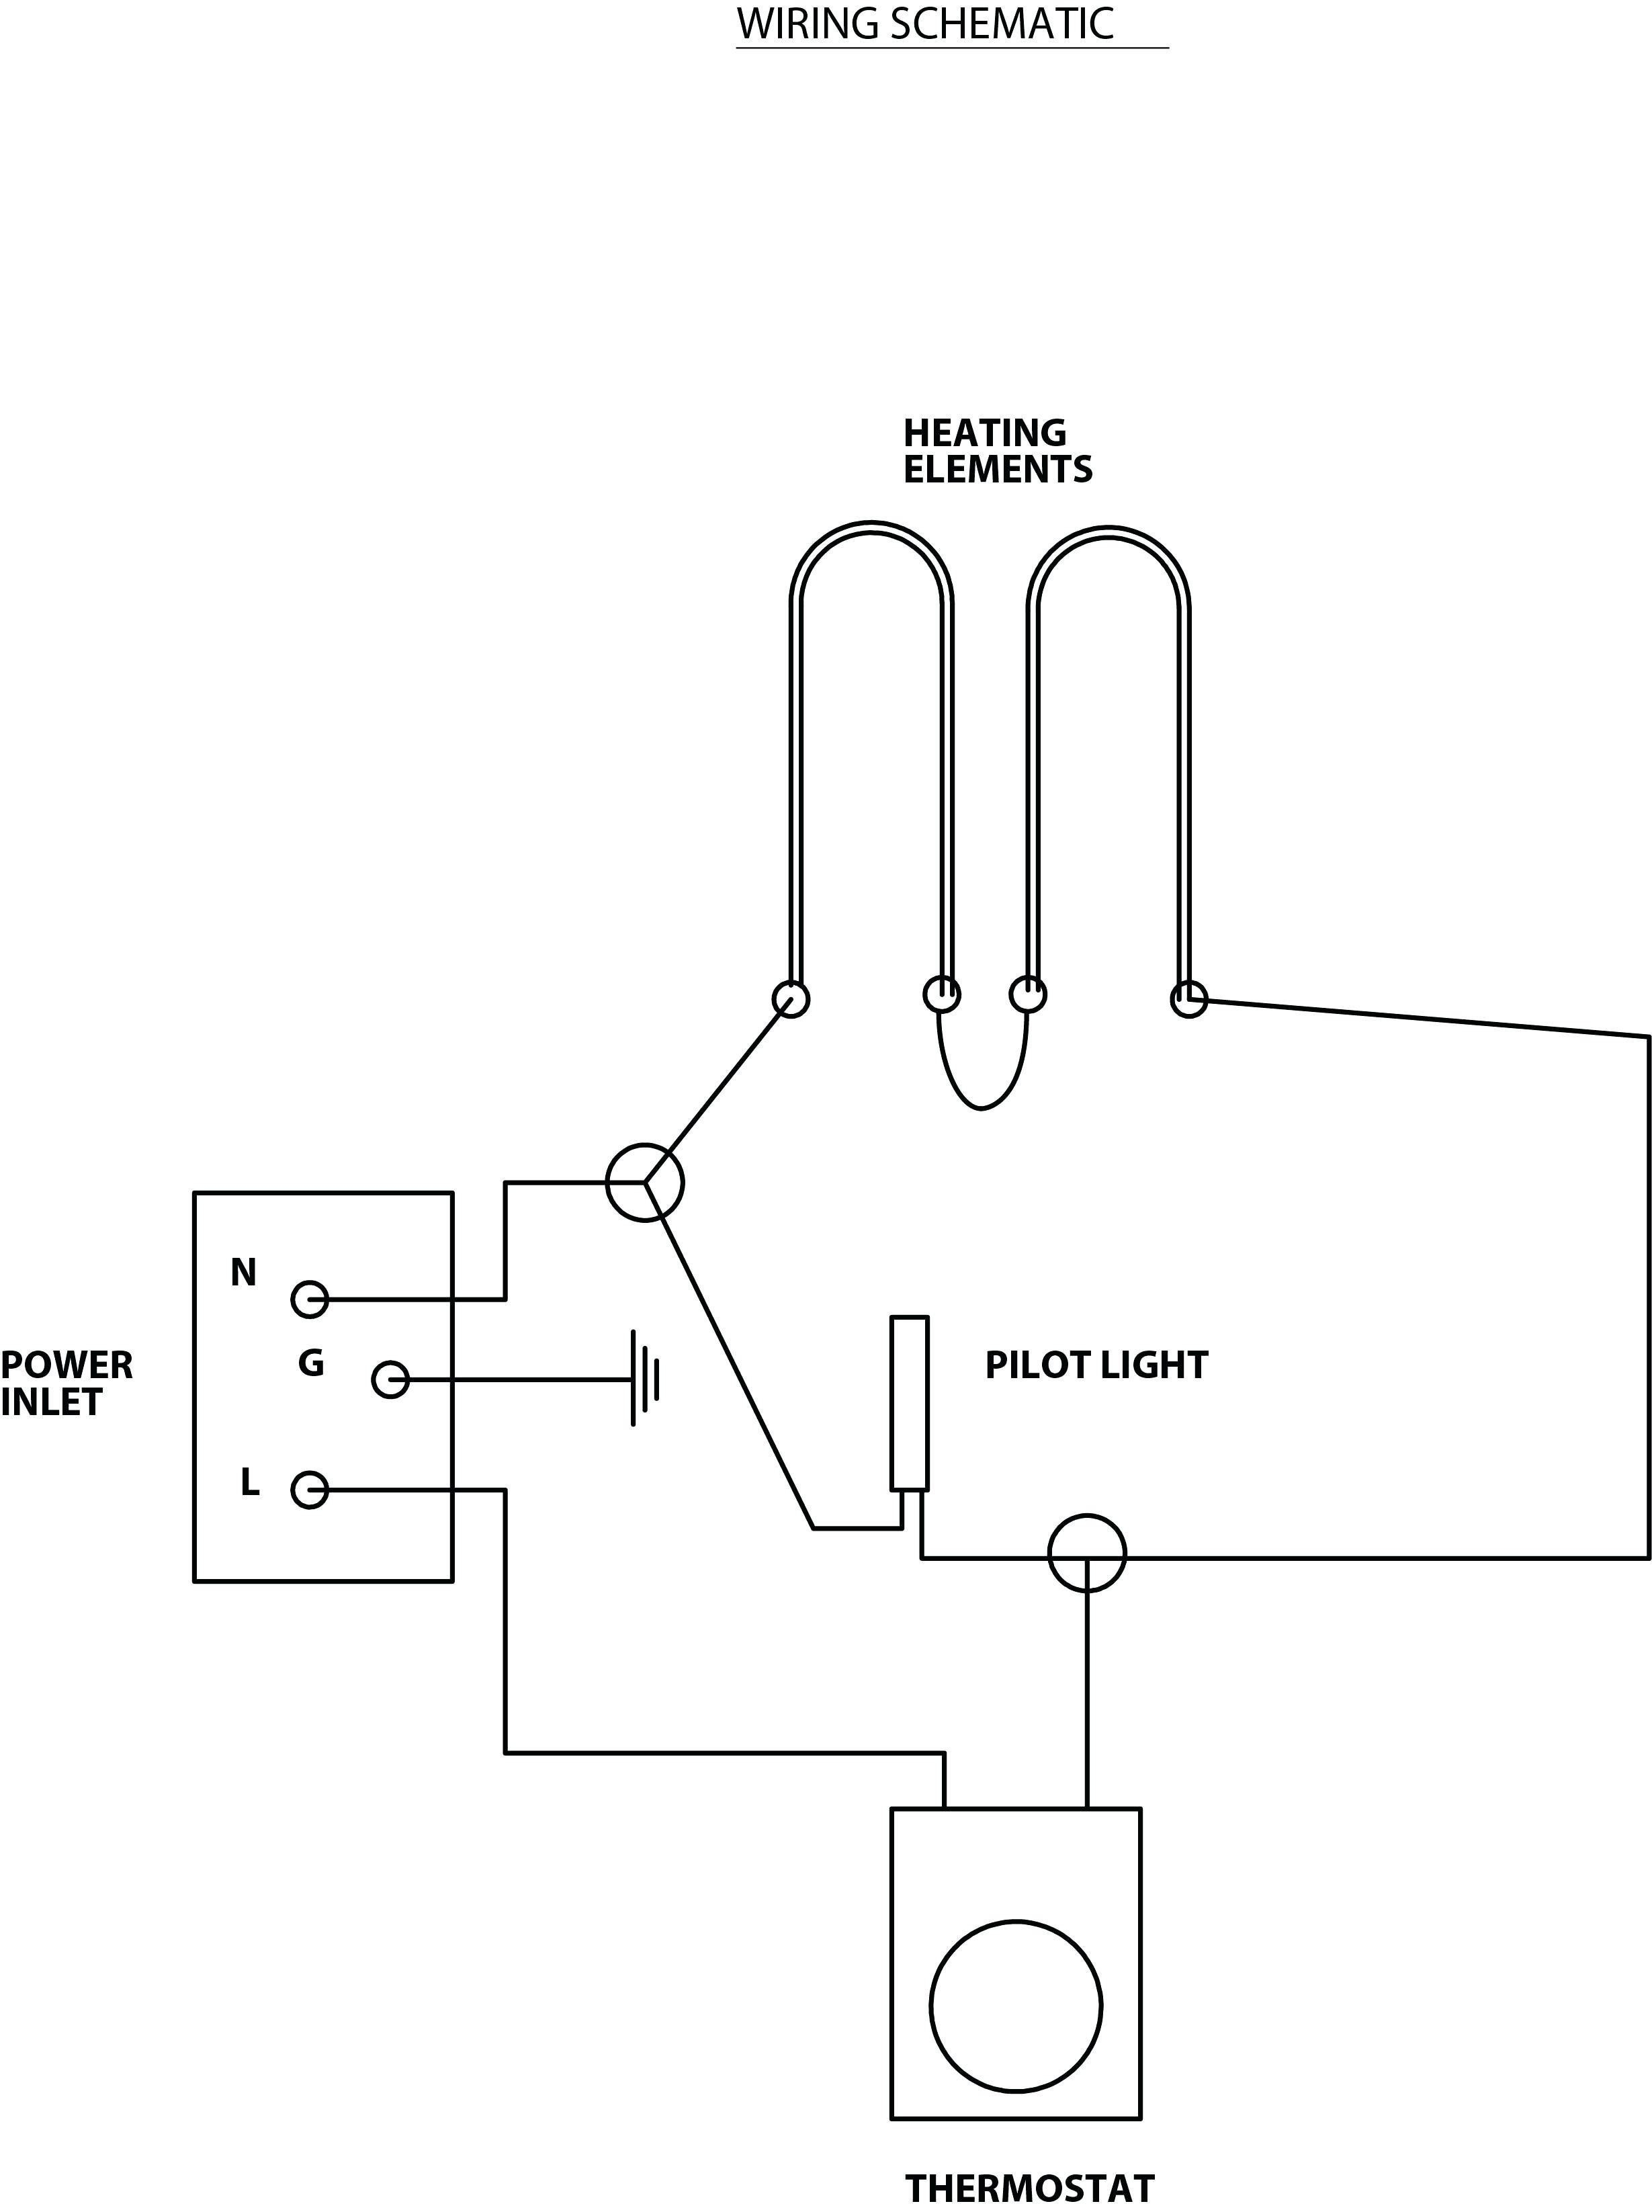 Wiring Diagram Likewise Yale Forklift Brake Diagram On Perkins Engine